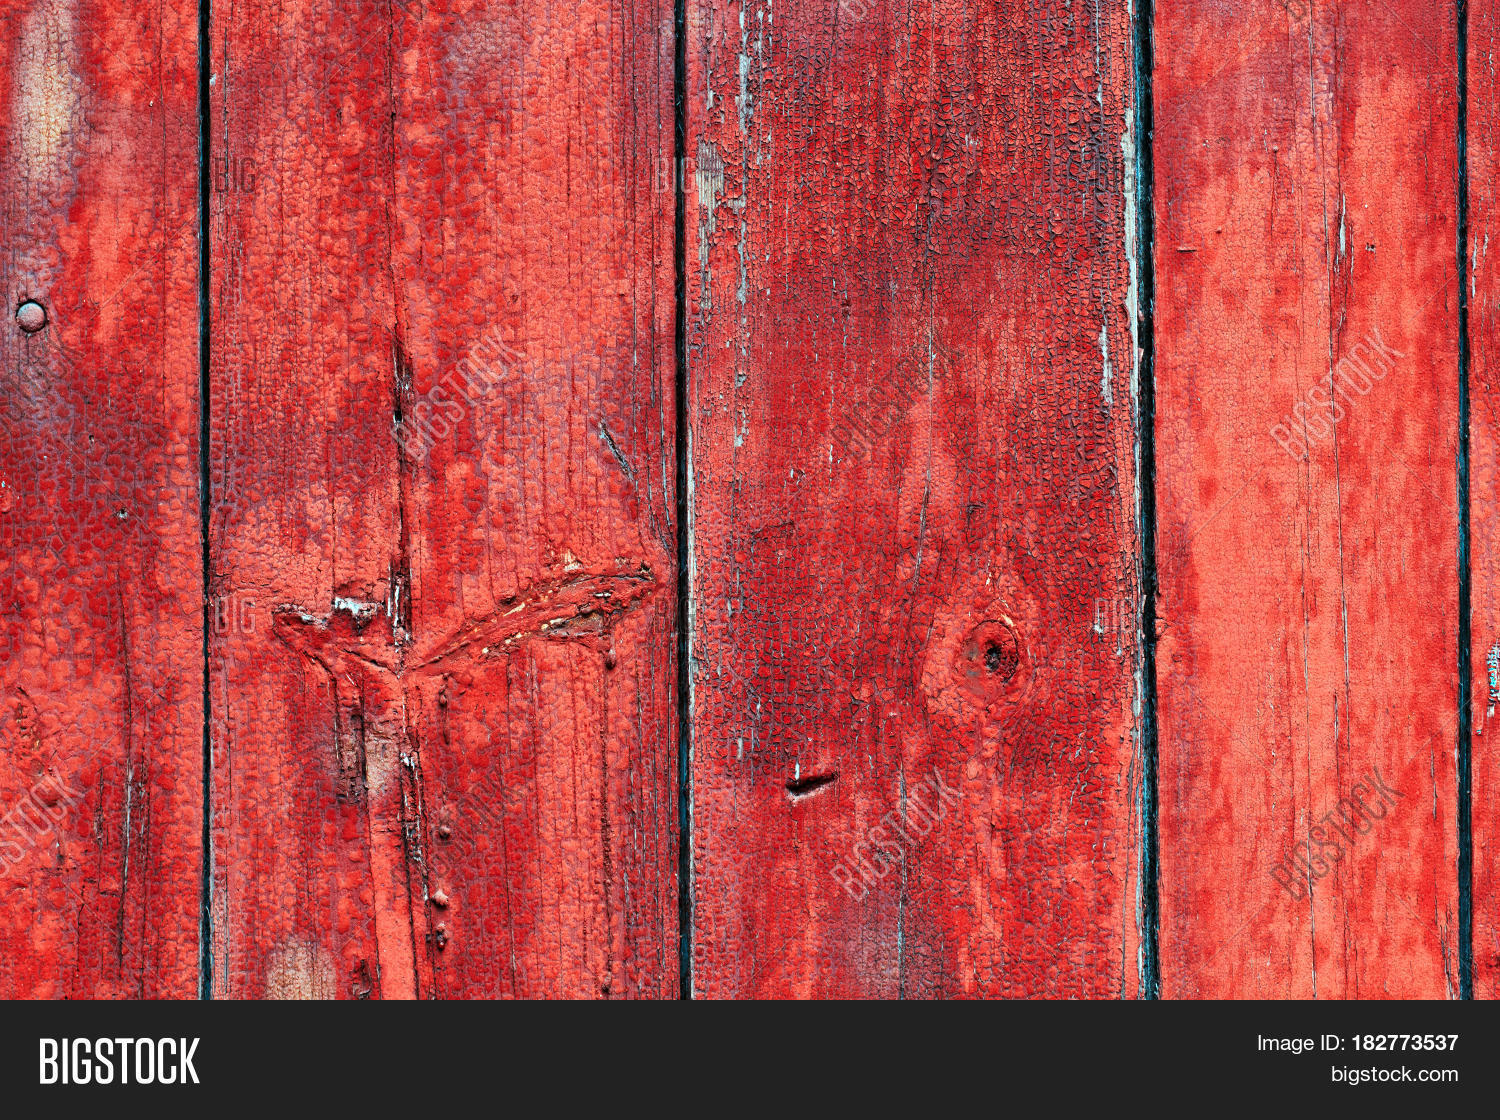 Texture Old Painted Image Photo Free Trial Bigstock